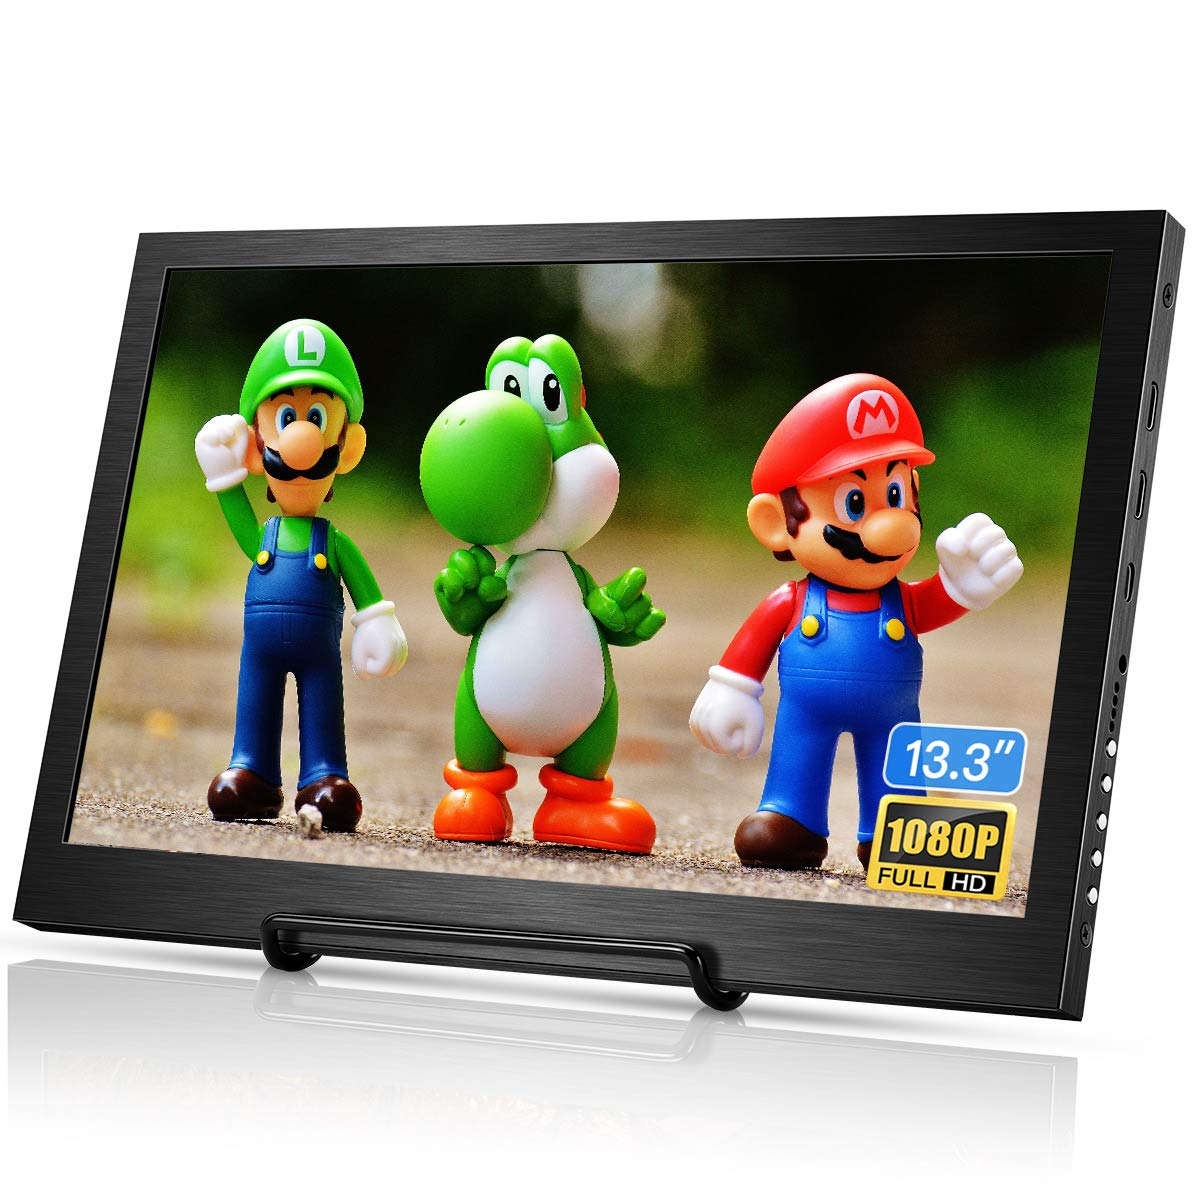 Eyoyo 13.3 inch Portable Monitor HDMI Input Gaming Monitor 1080P HDR IPS Display Compatible with PS3 PS4 Xbox One Xbox 360 Raspberry Pi Wii U Laptop PC DVR w Dual Speaker